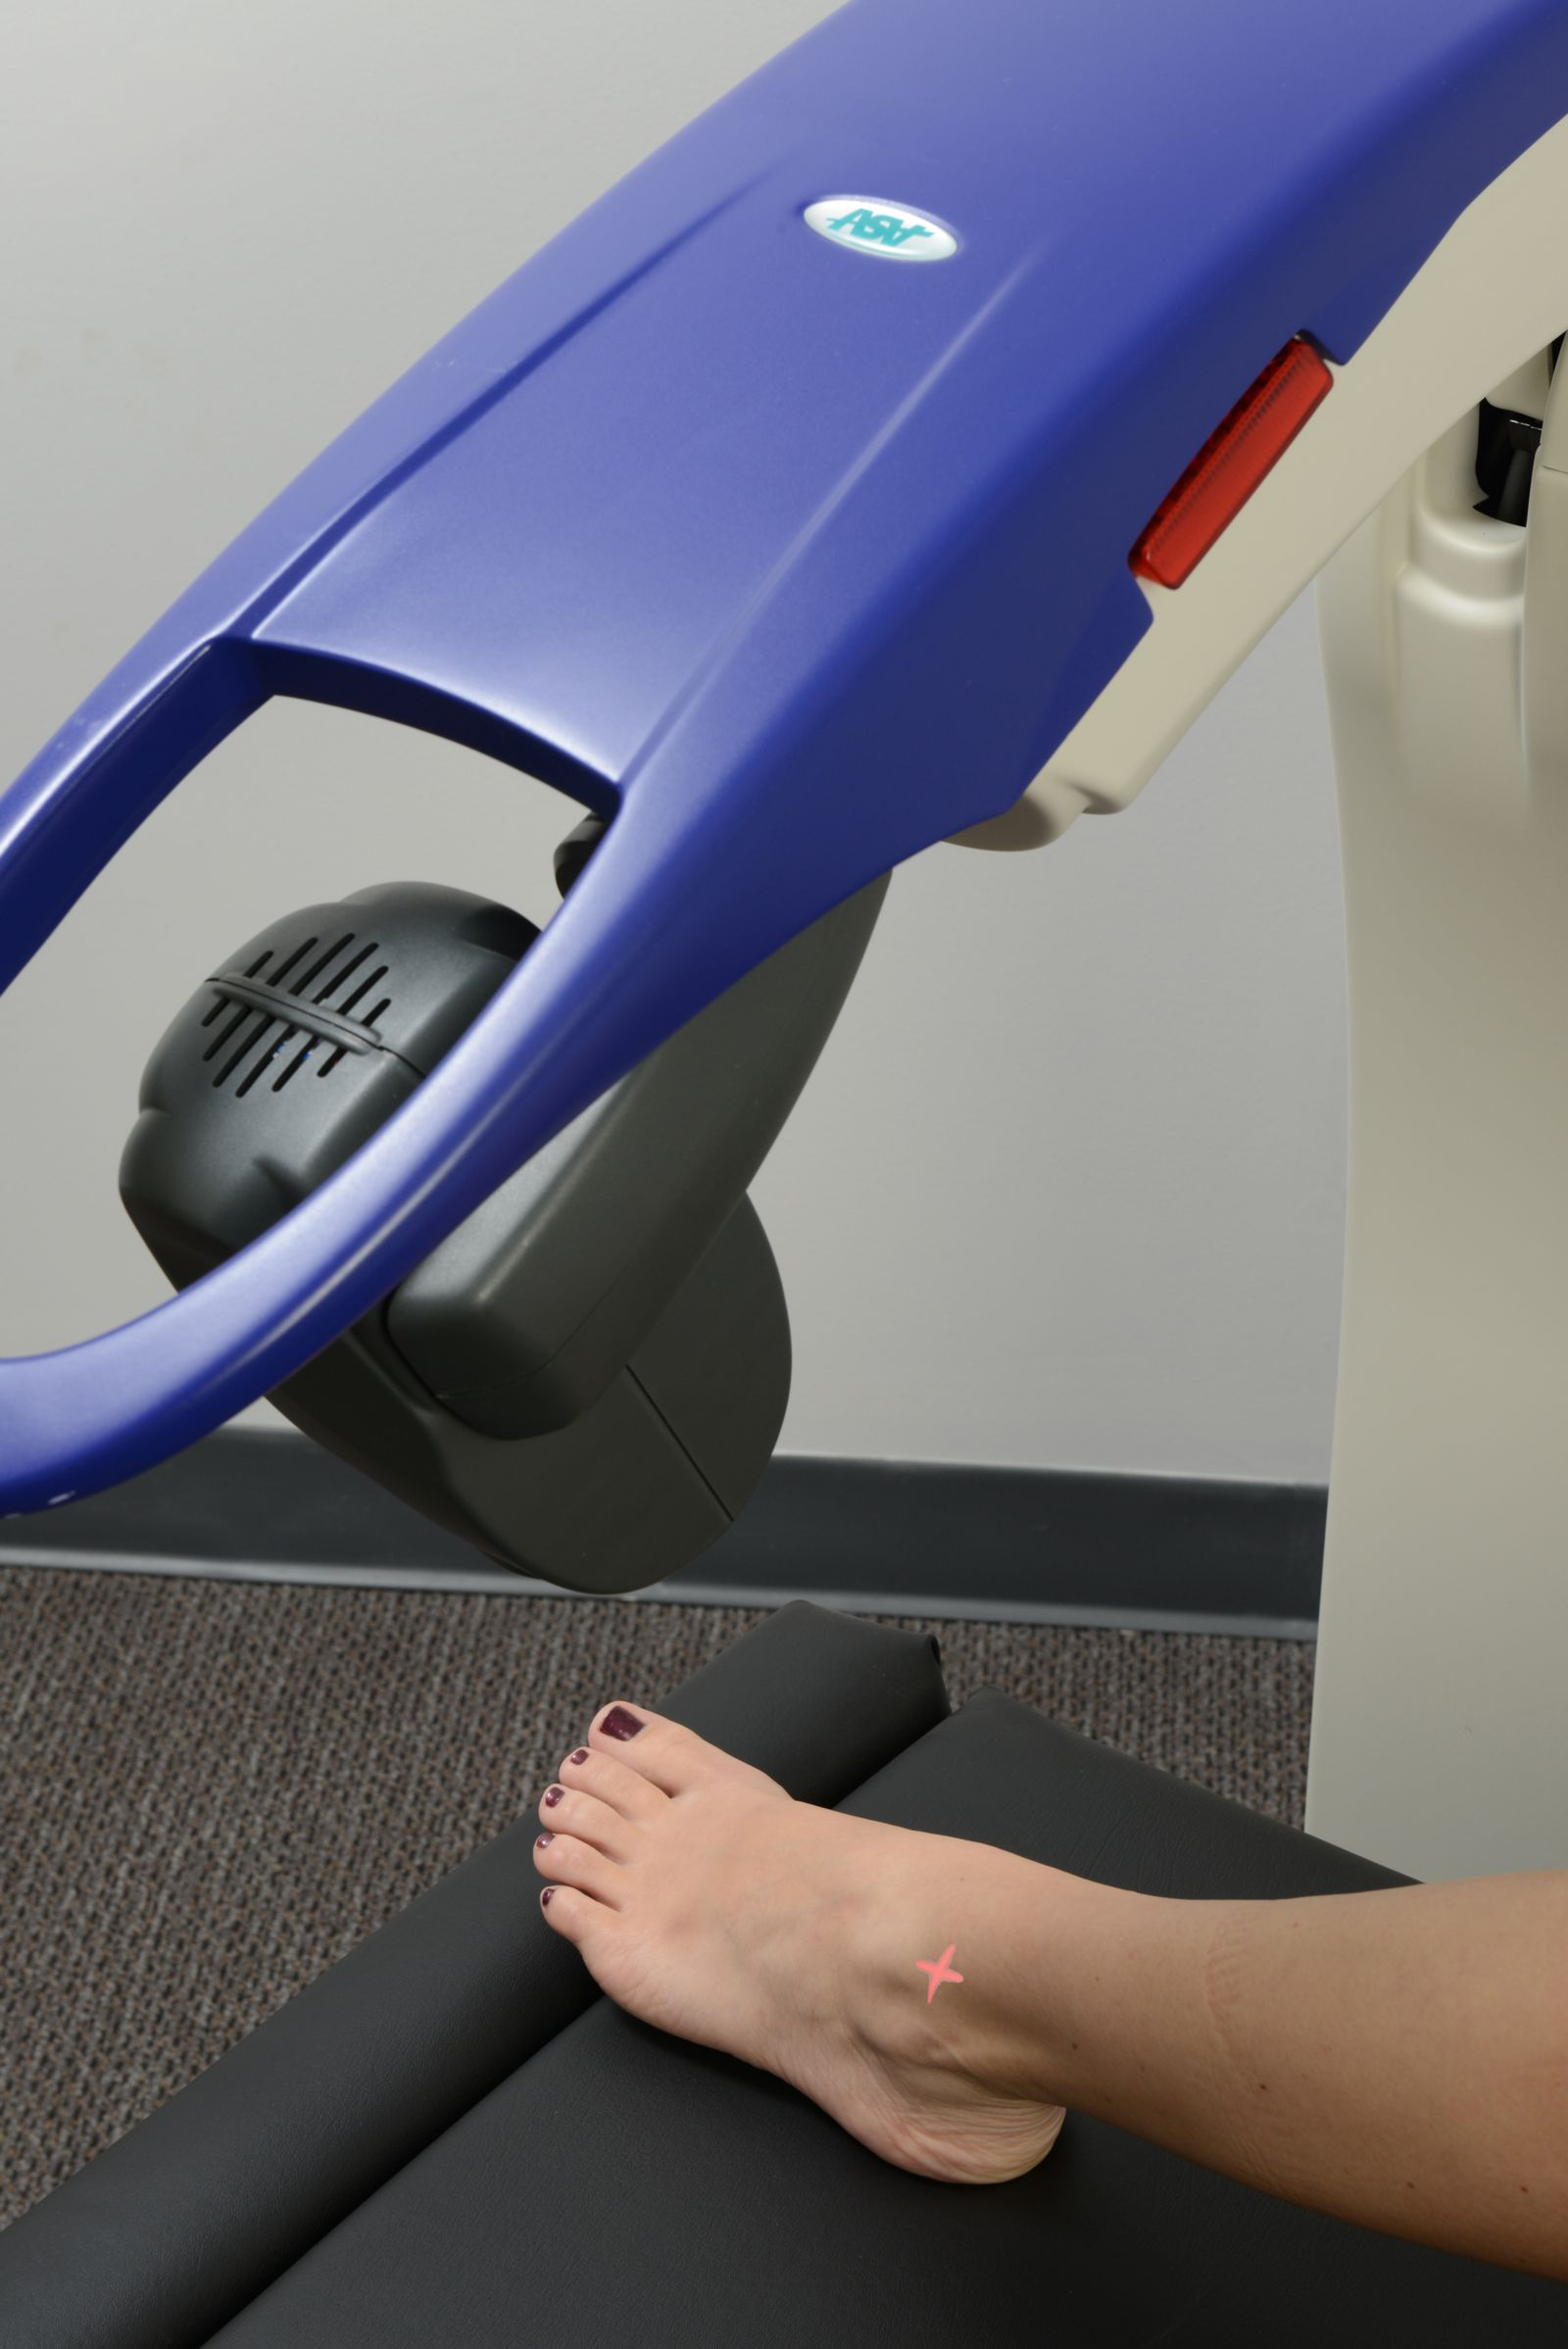 close up view of the gray head of the laser shining a red laser on the top of the ankle of a woman's foot.